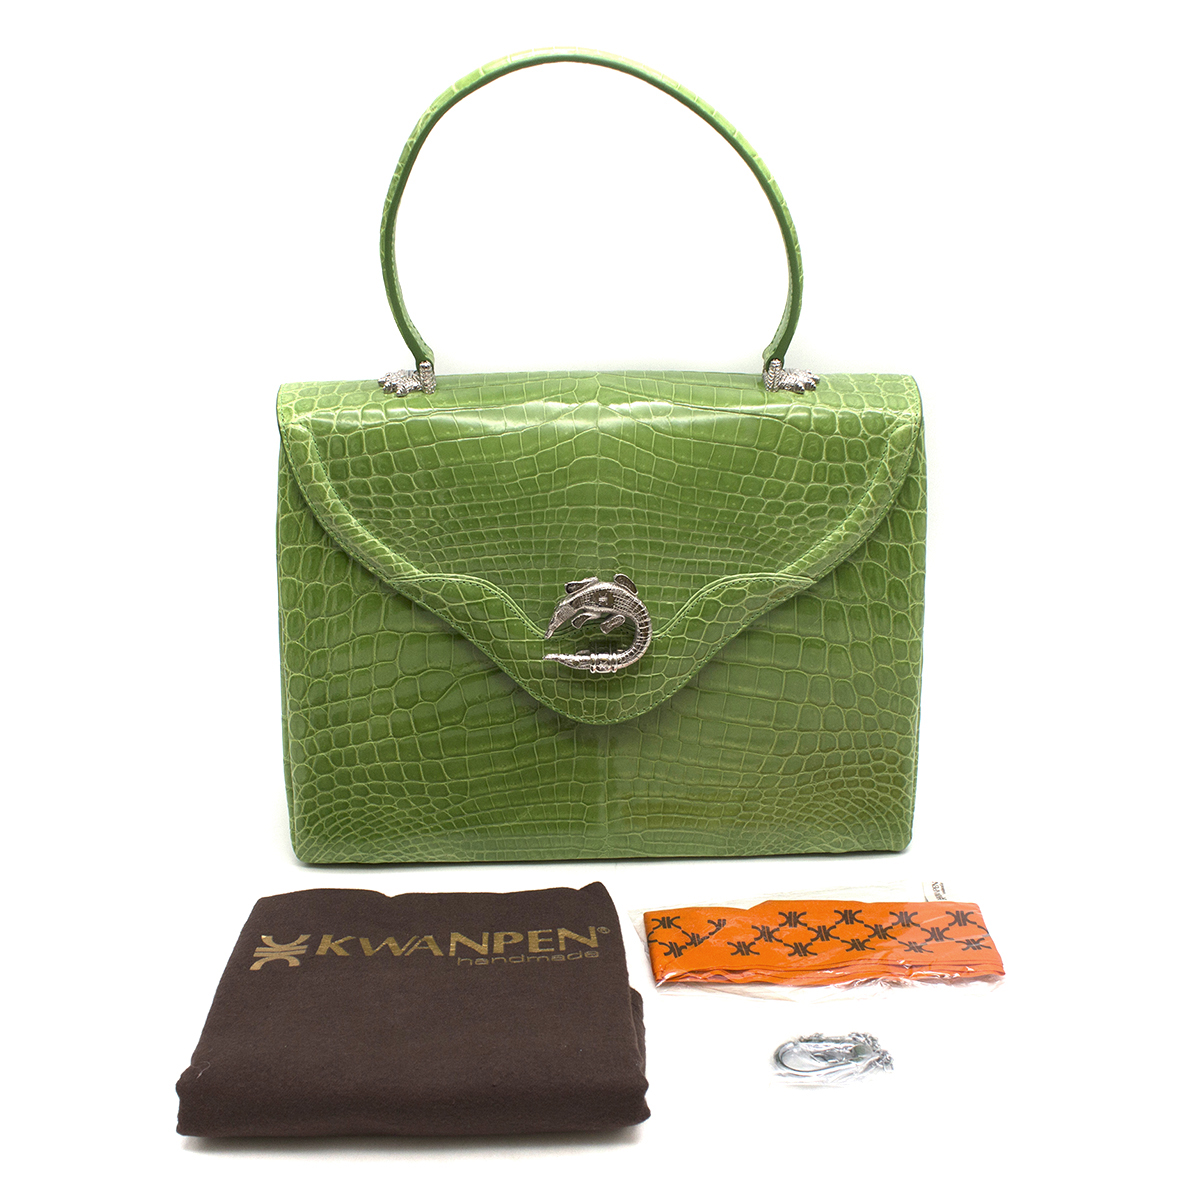 Kwanpen Green Crocodile Leather 5568 Signature Handbag